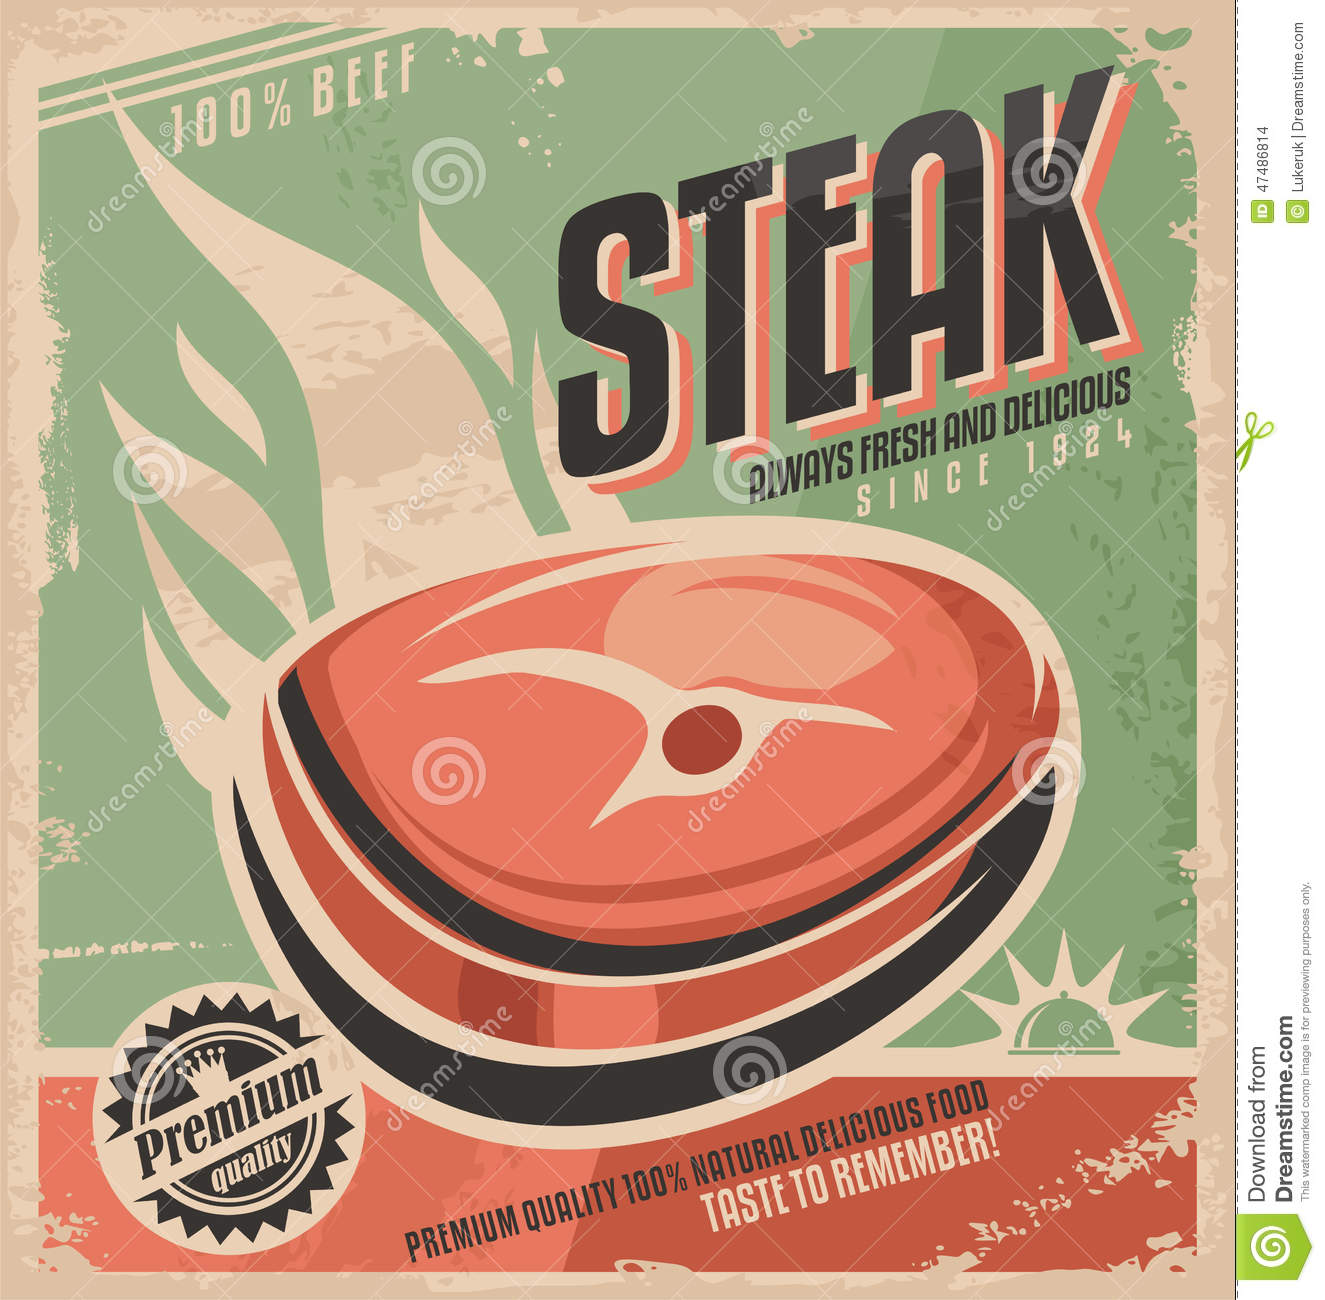 Steak retro poster design stock vector Illustration of